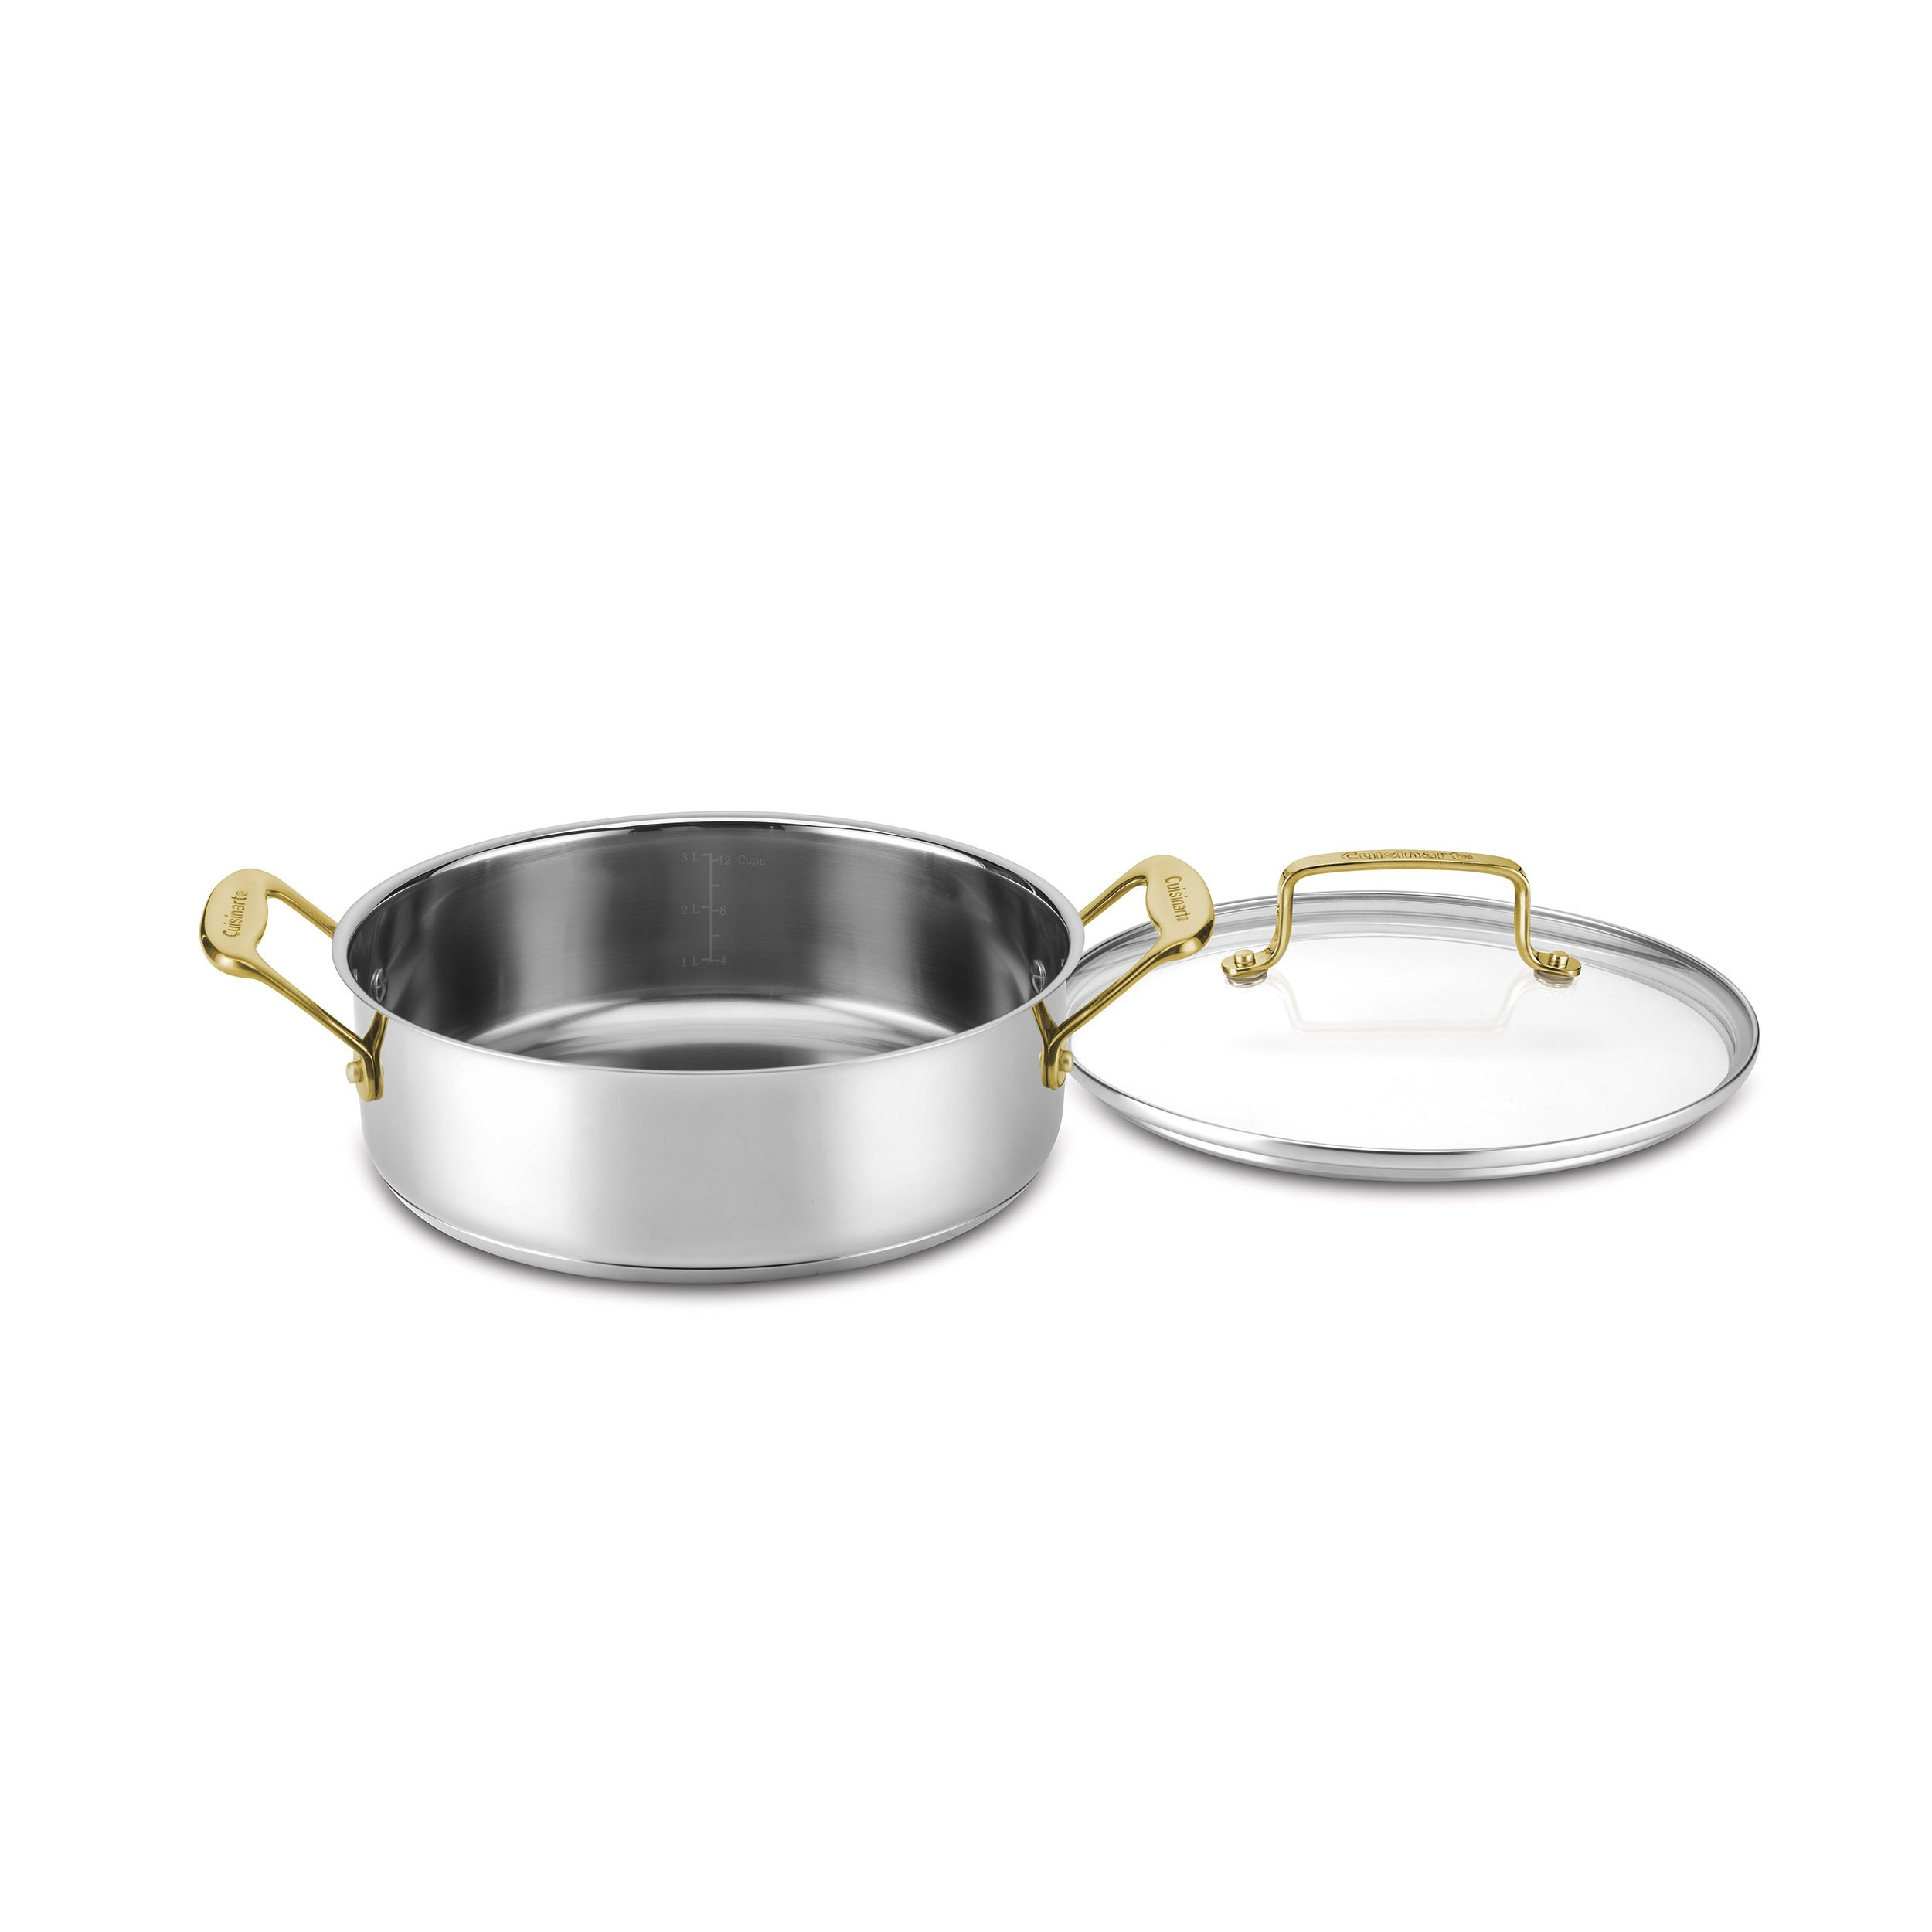 Cuisinart C7M55-24GD Mineral Collection Casserole with Cover, Medium, Stainless Steel